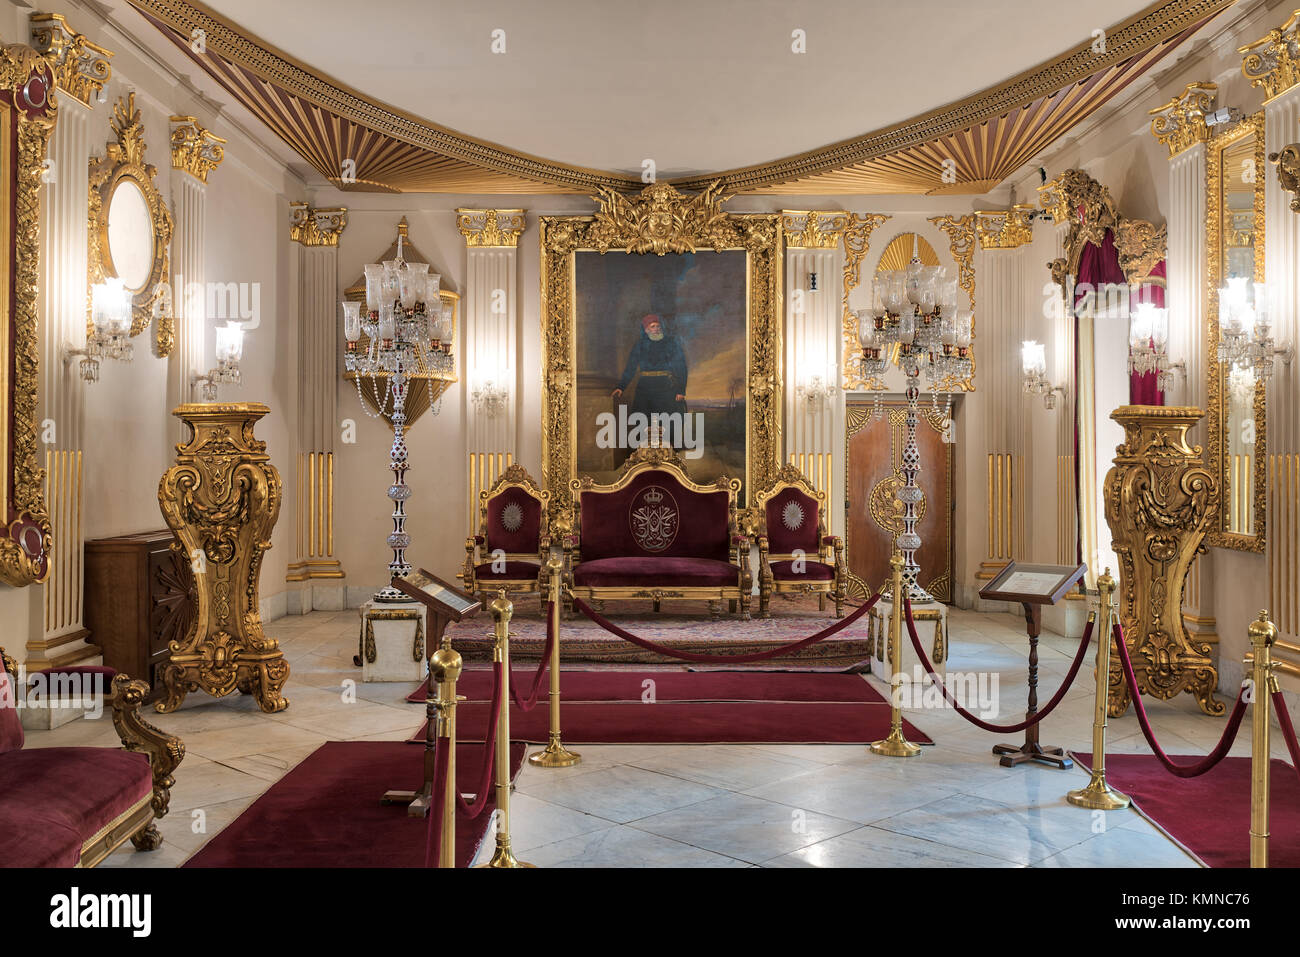 Cairo, Egypt - December 2, 2017: Throne Hall at Manial Palace of Prince Mohammed Ali Tewfik with gold plated red - Stock Image